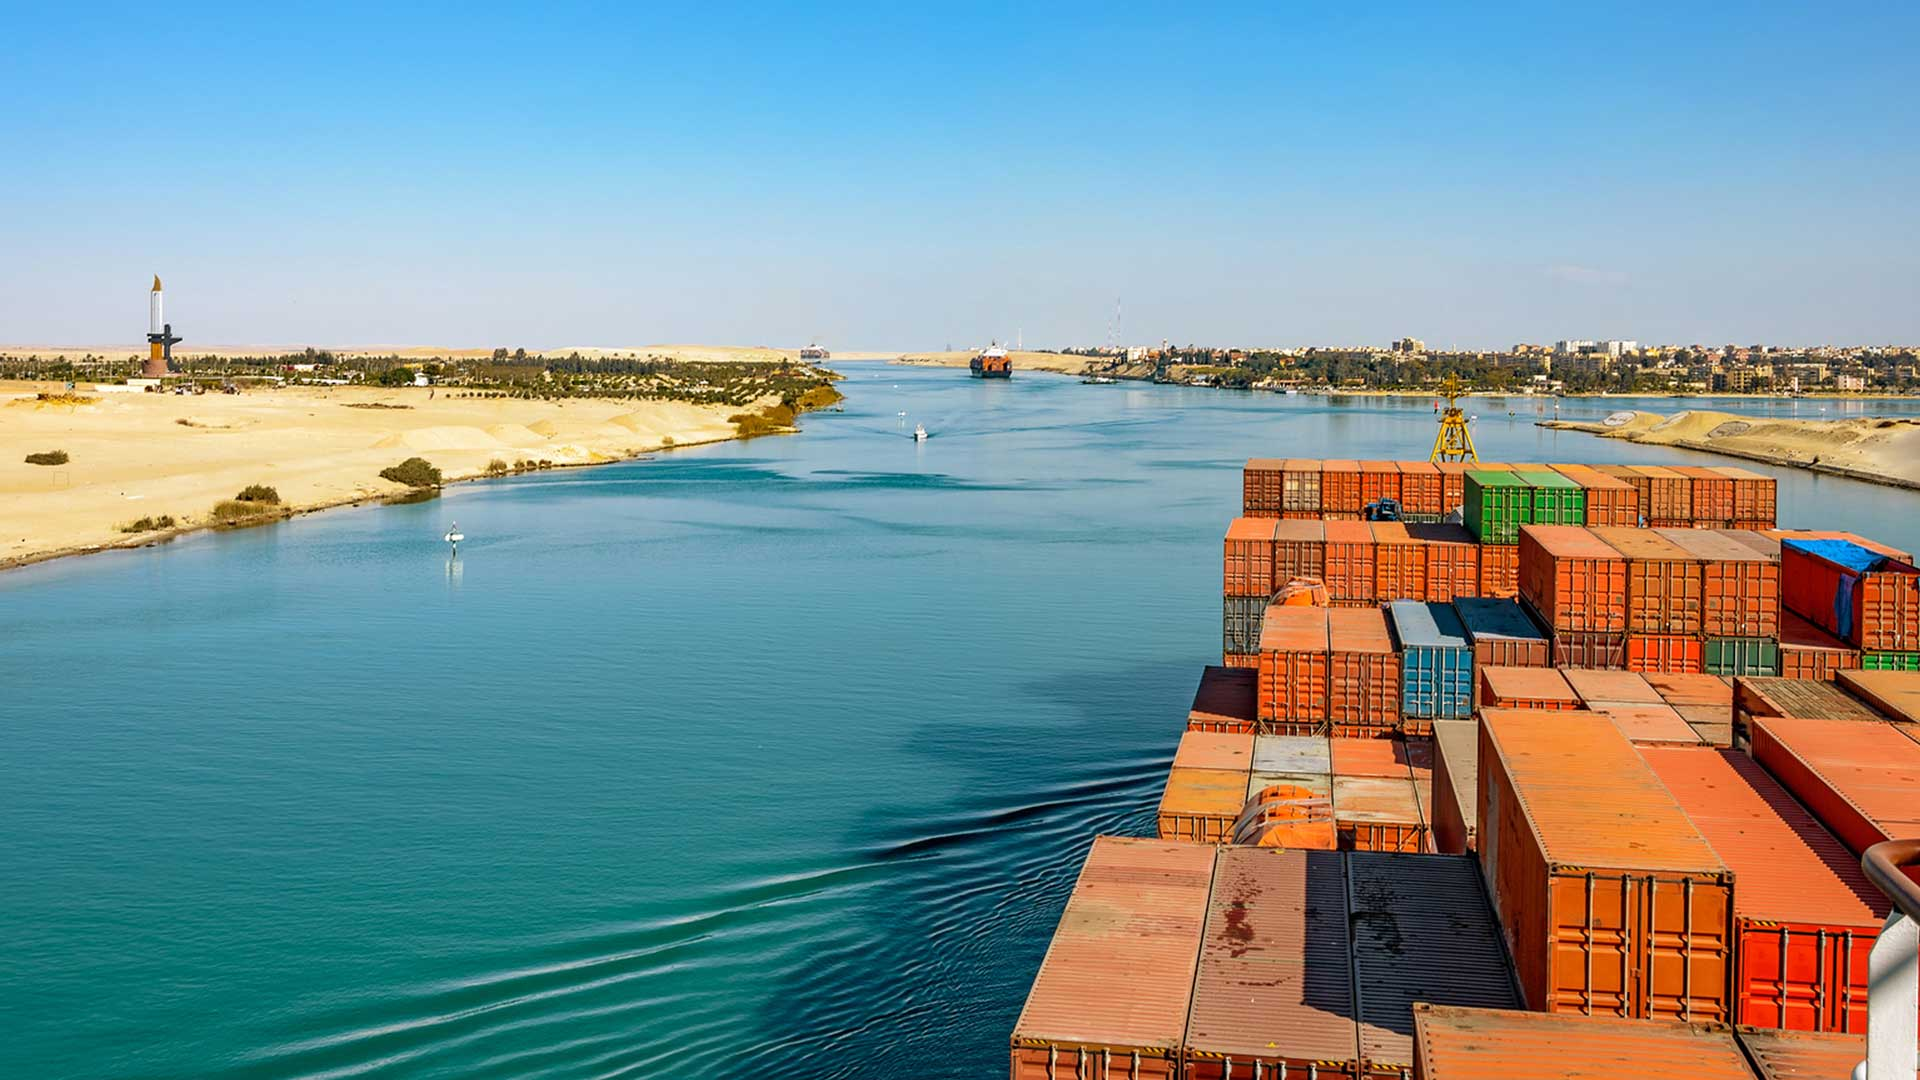 new-suez-canal-egypt-water-presentation-slider-bg-3